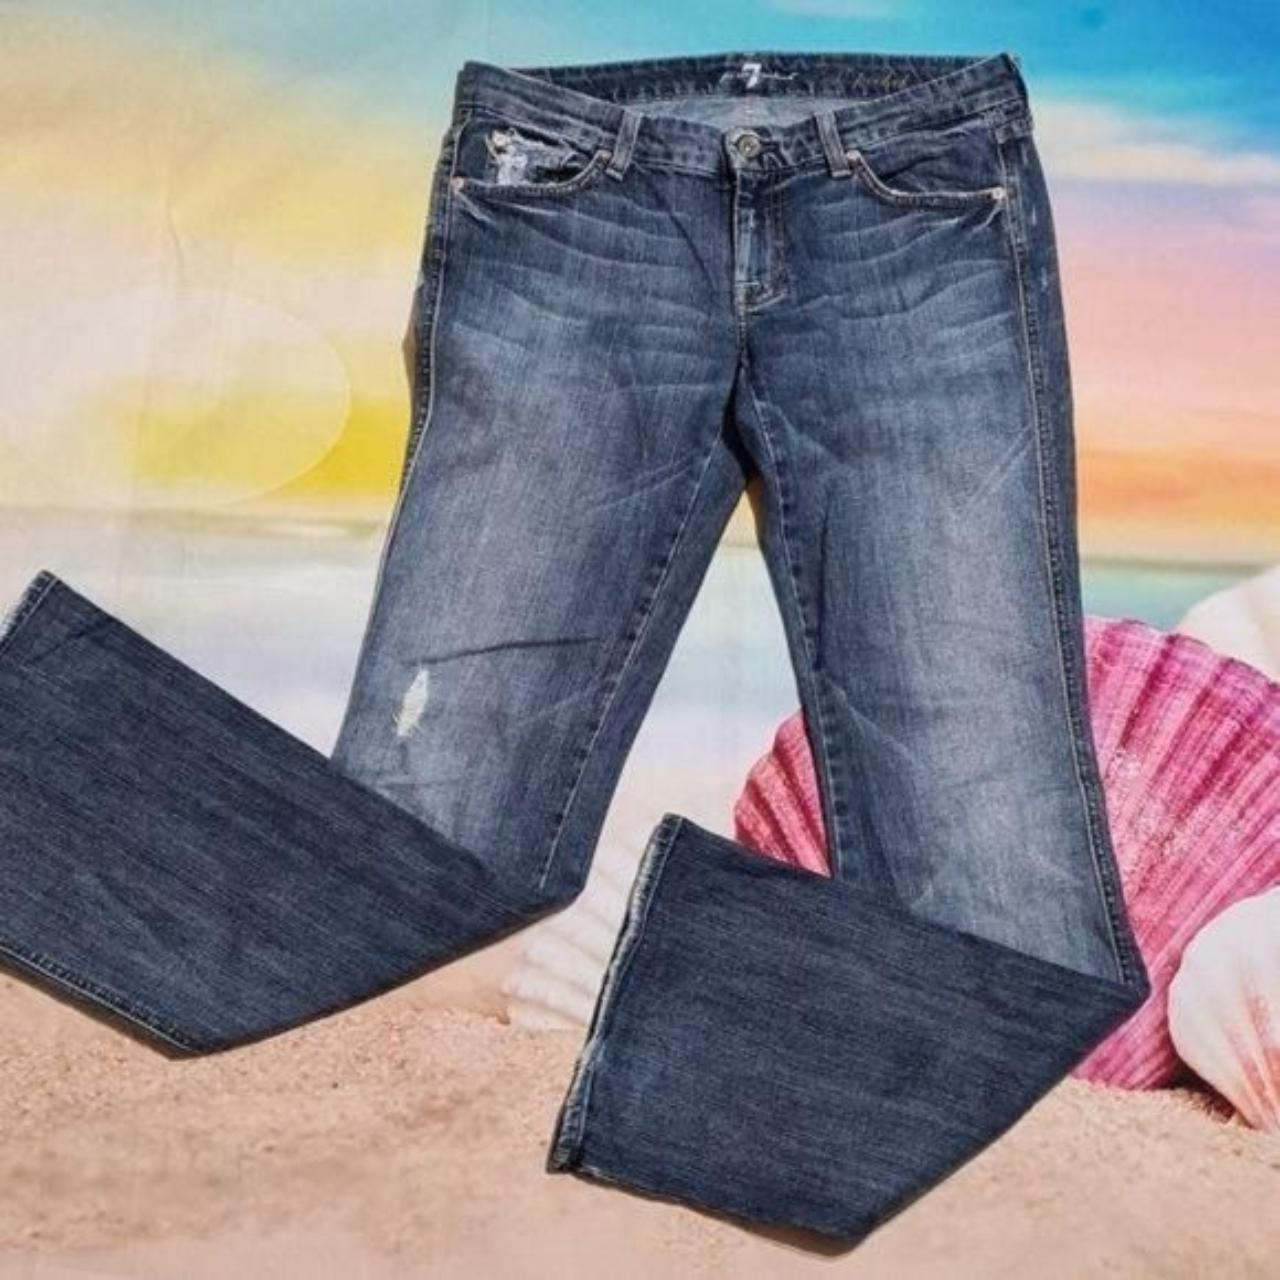 Product Image 1 - 7 For all Mankind Jeans